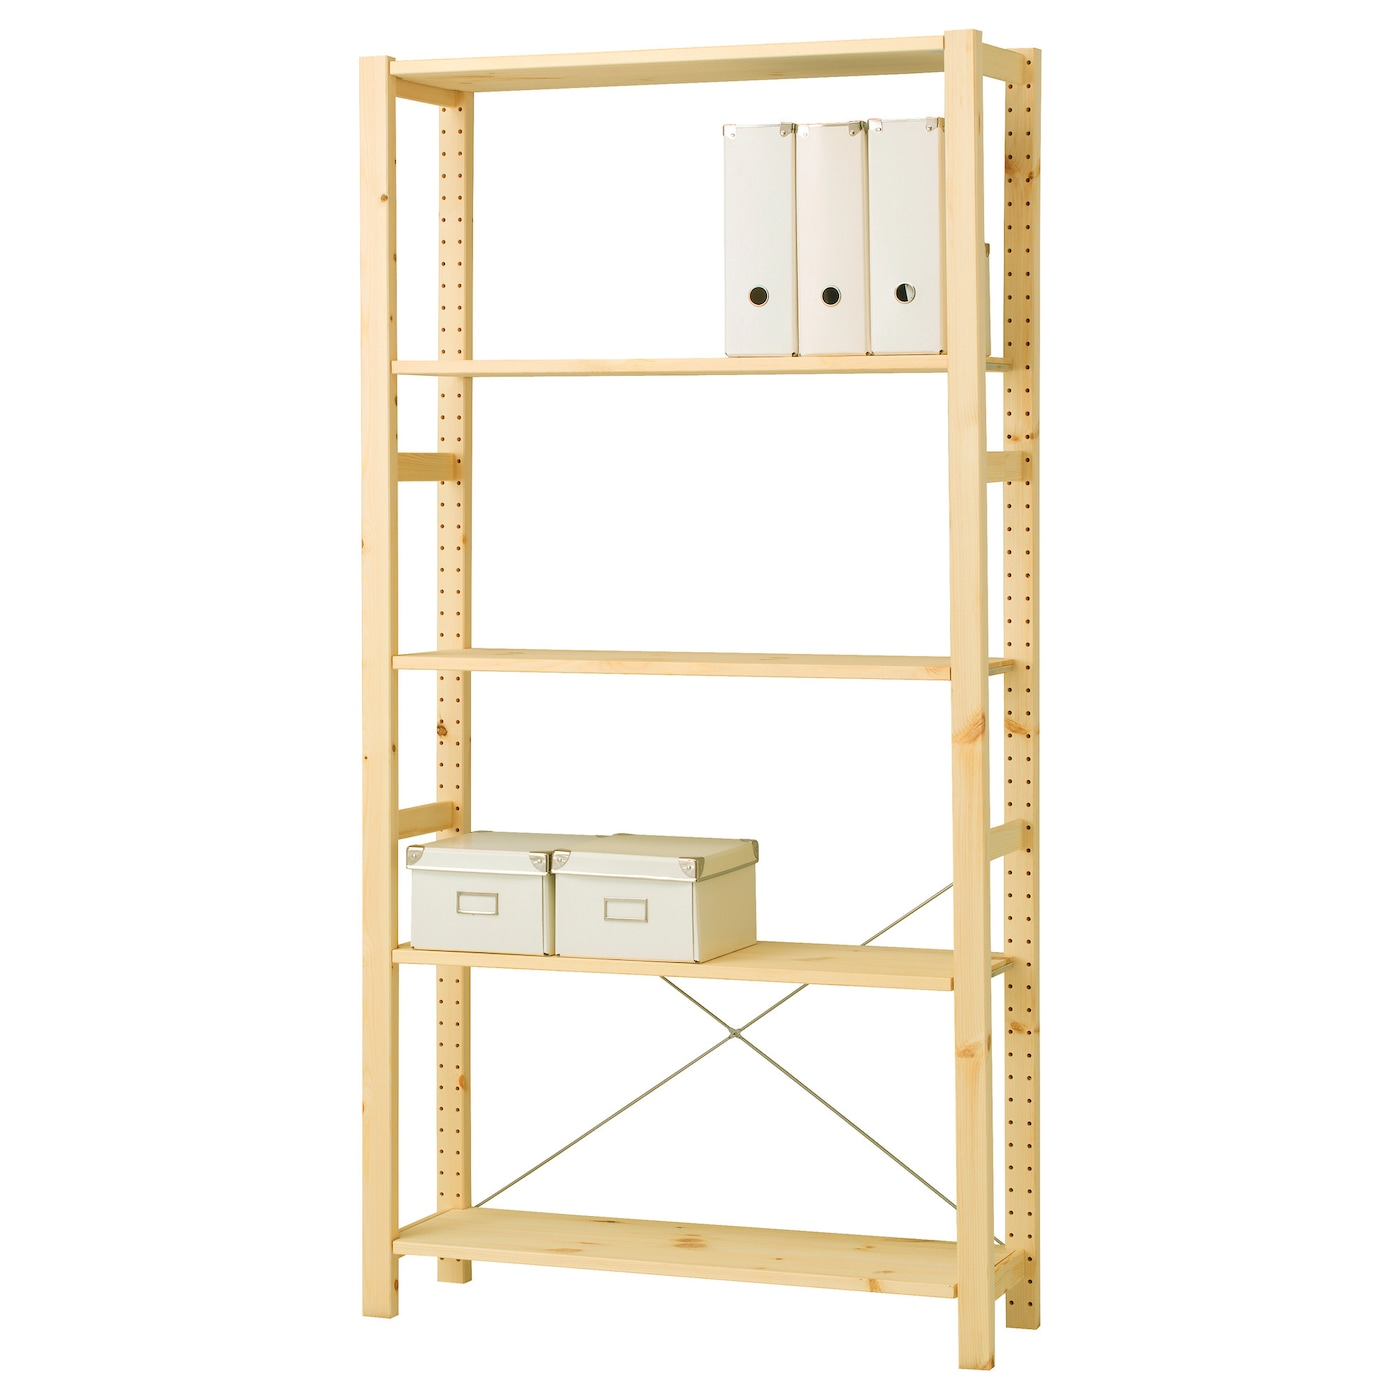 IKEA IVAR shelving unit You can move shelves and adapt spacing to suit your needs.